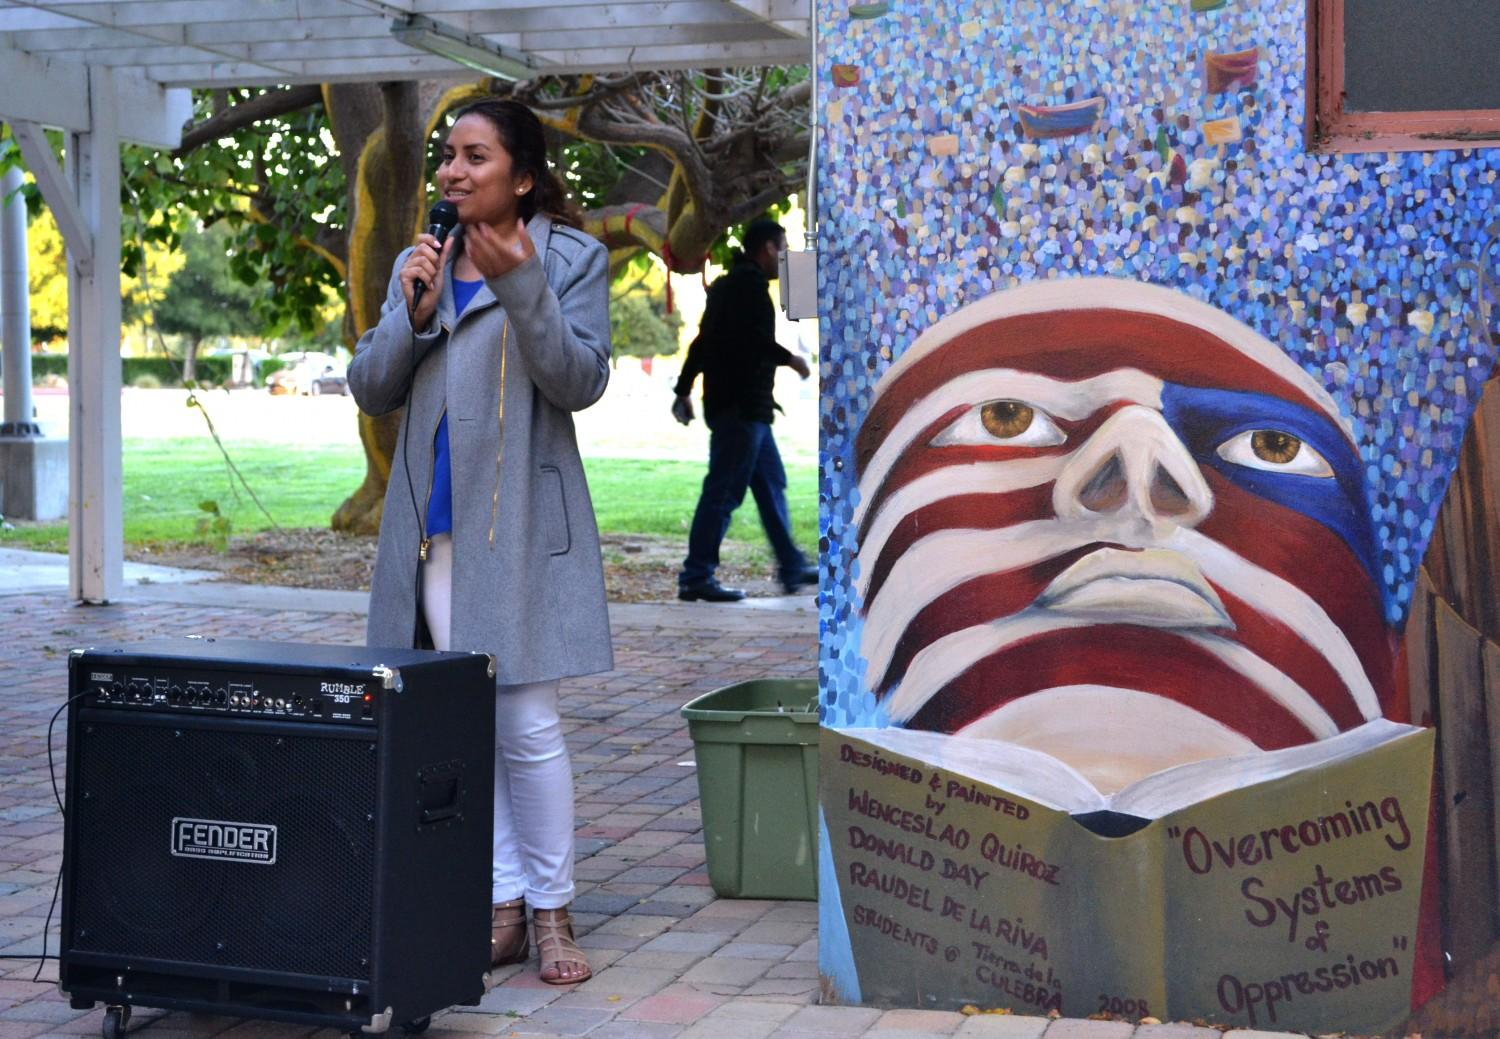 Honduran activist, Latino community share experiences at open night mic